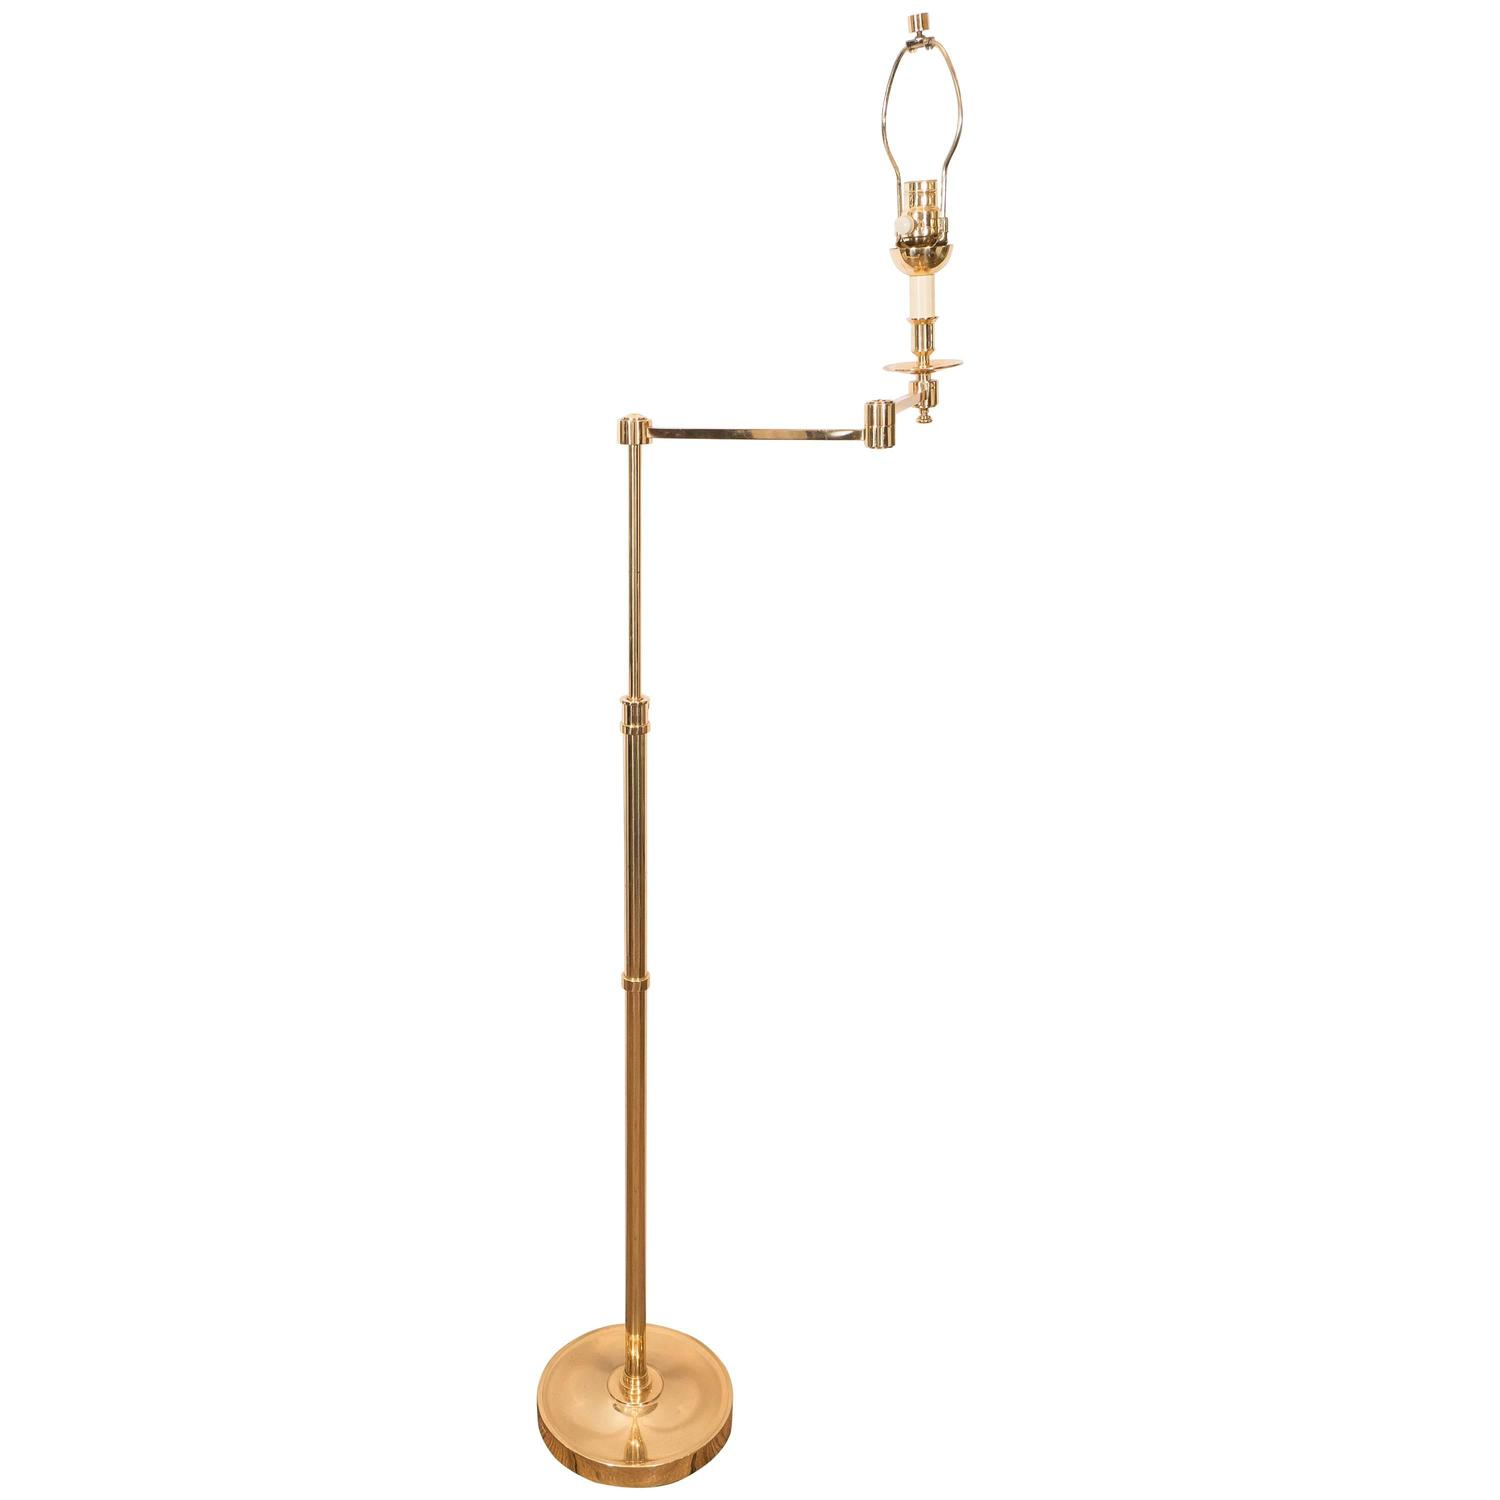 midcentury brass adjustable floor lamp with articulated. Black Bedroom Furniture Sets. Home Design Ideas